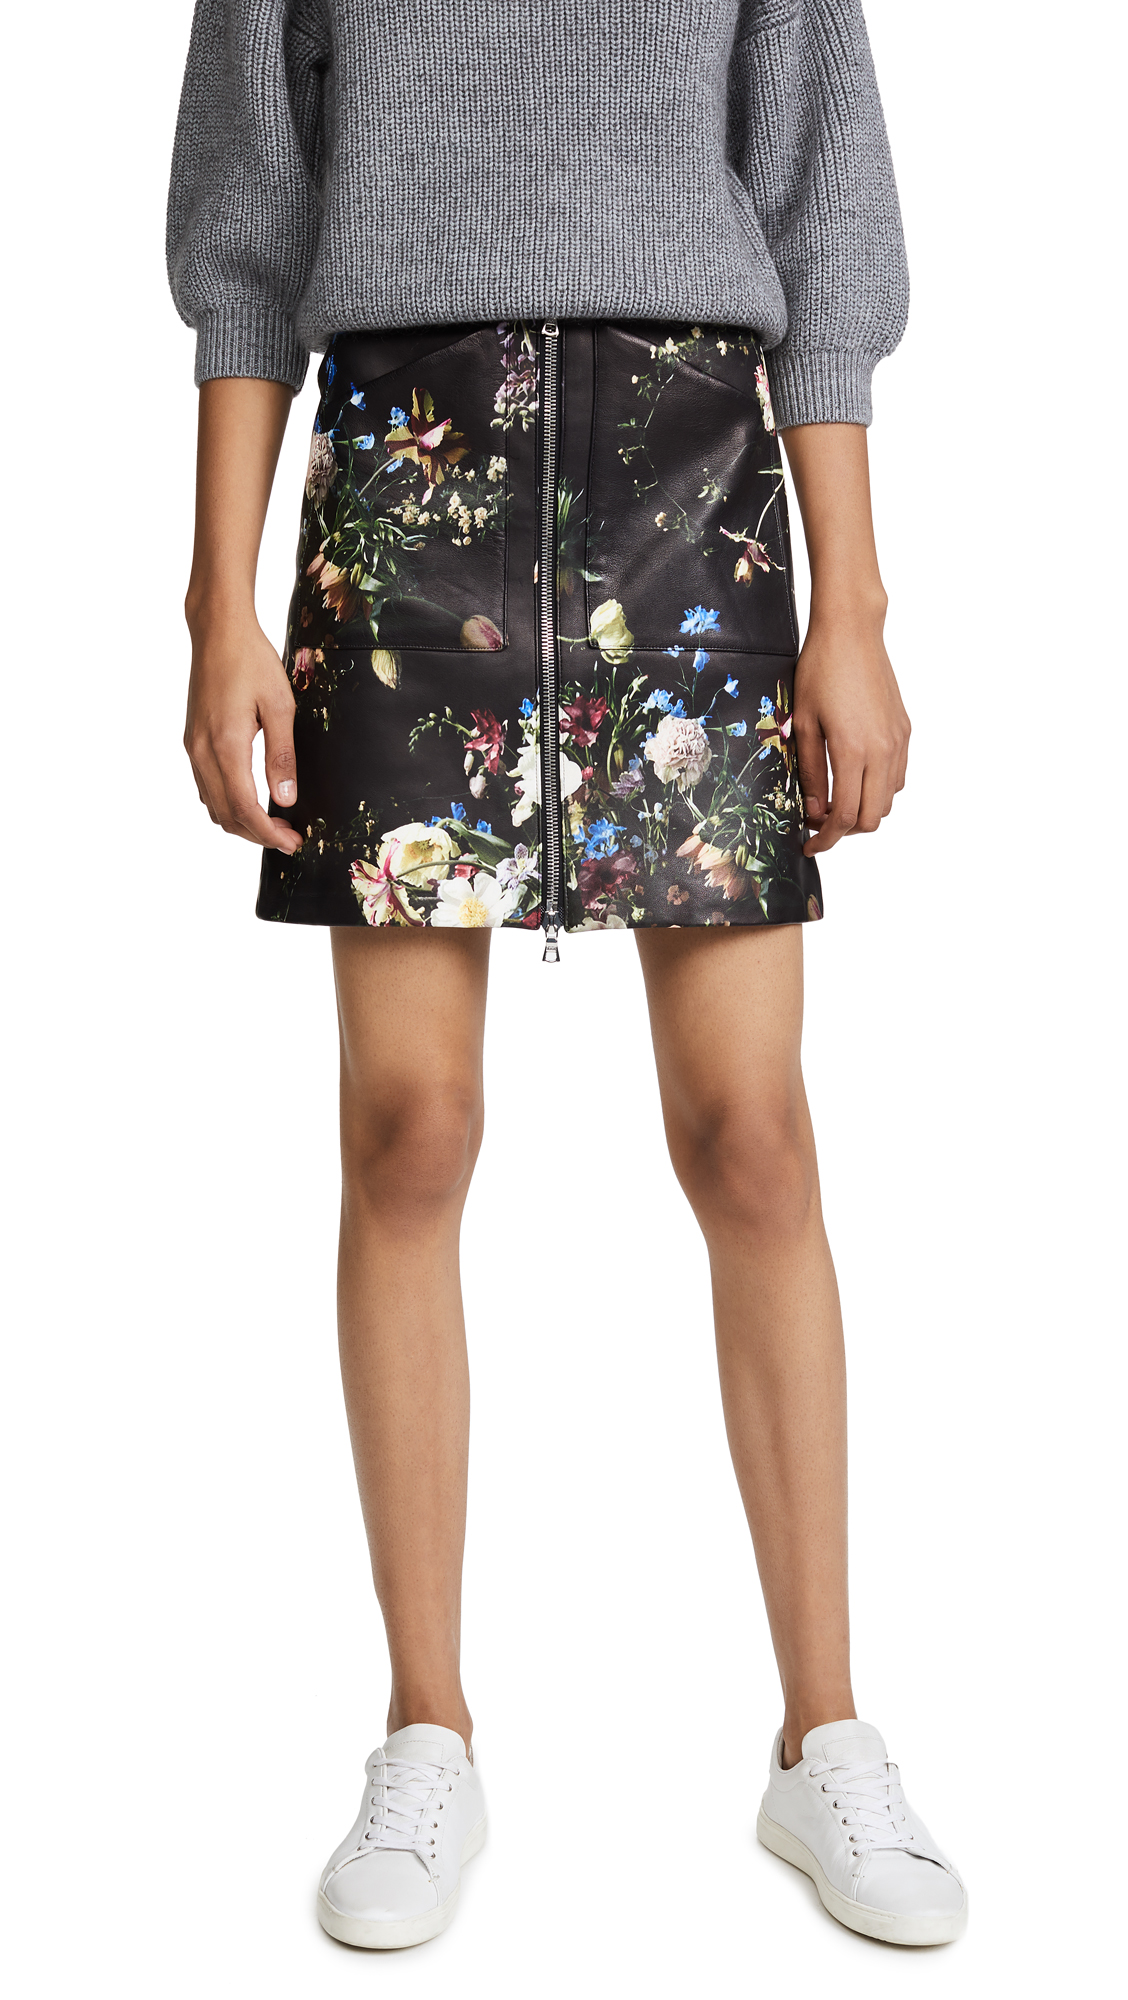 Adam Lippes Floral Print Leather Skirt In Black Multi